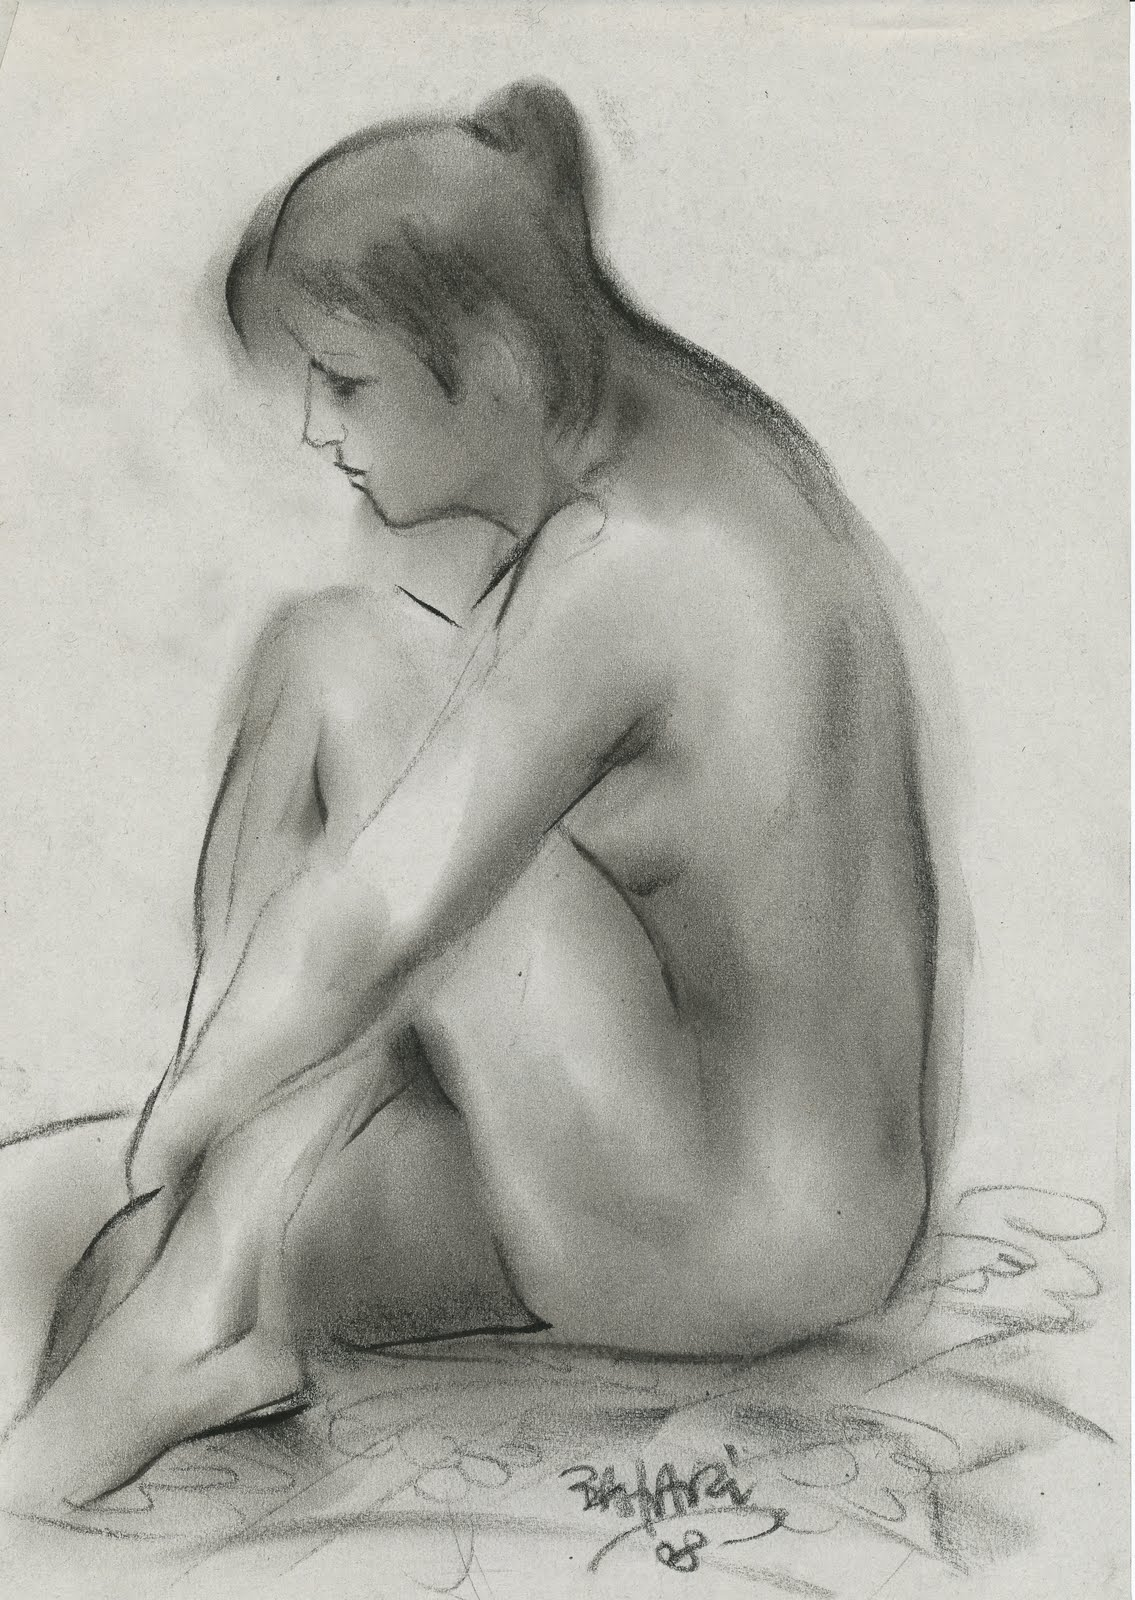 at the nude models however